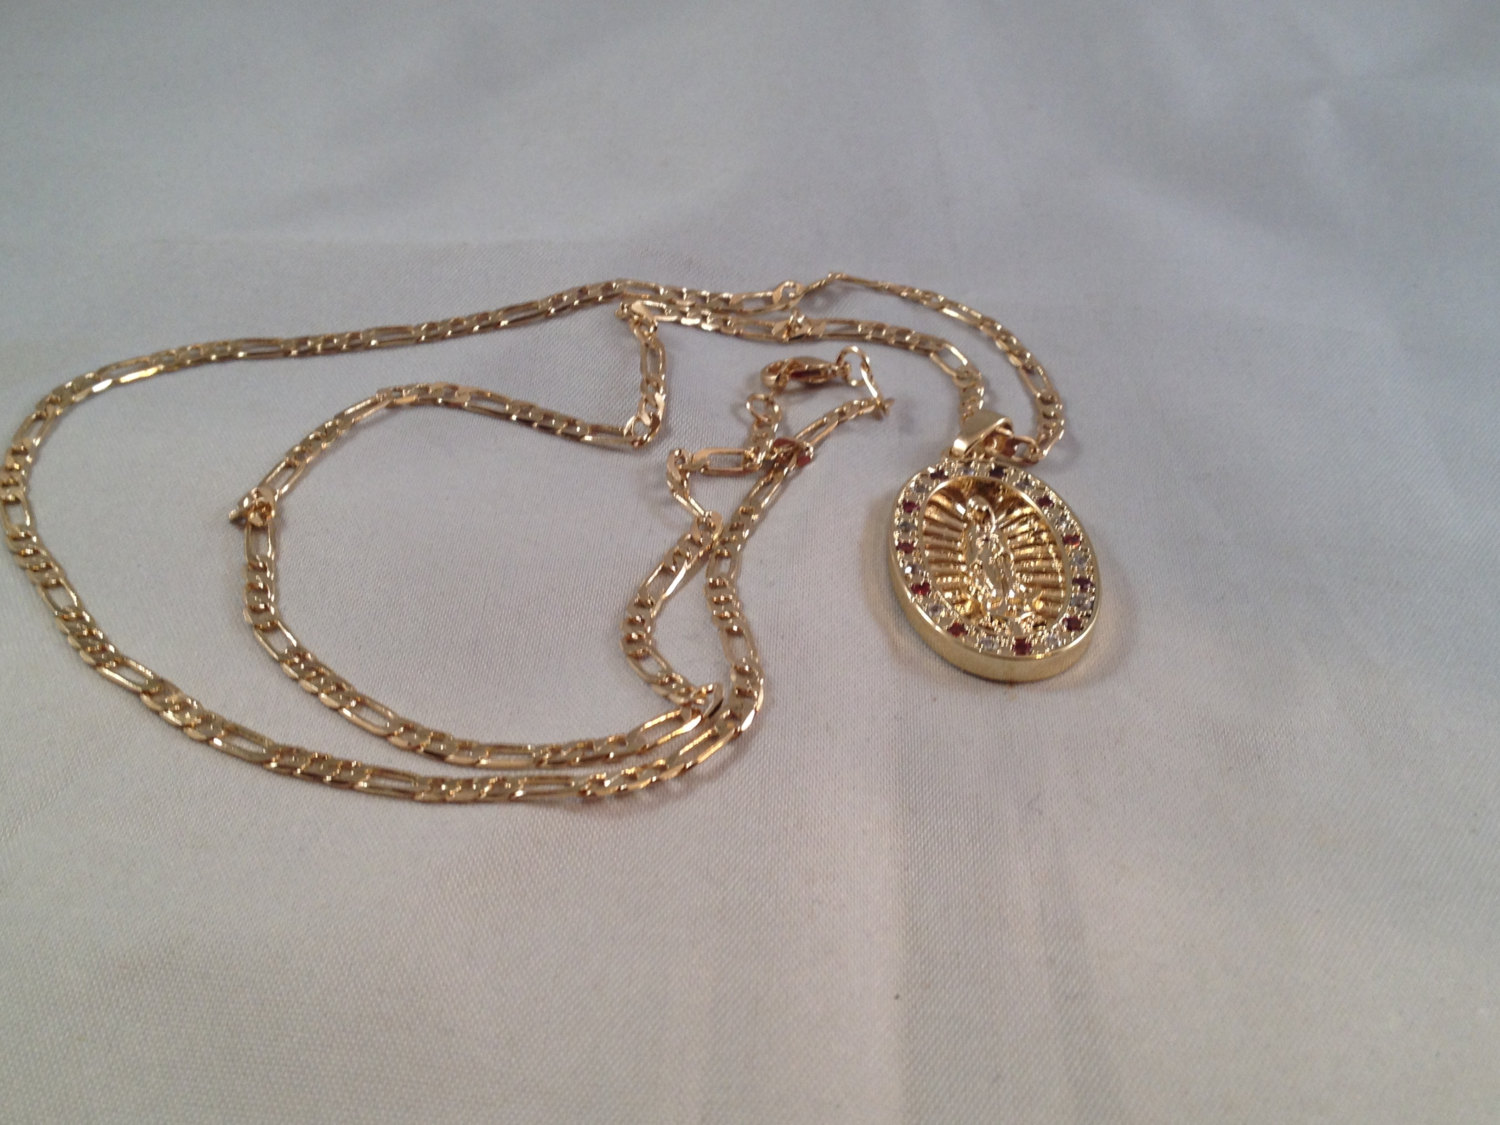 eec26edfdfaf8 Virgen De Guadalupe Cadena Oro Rosario Sinaloense Our Lady of Guadalupe  Gold Necklace Red White from rg rosaries